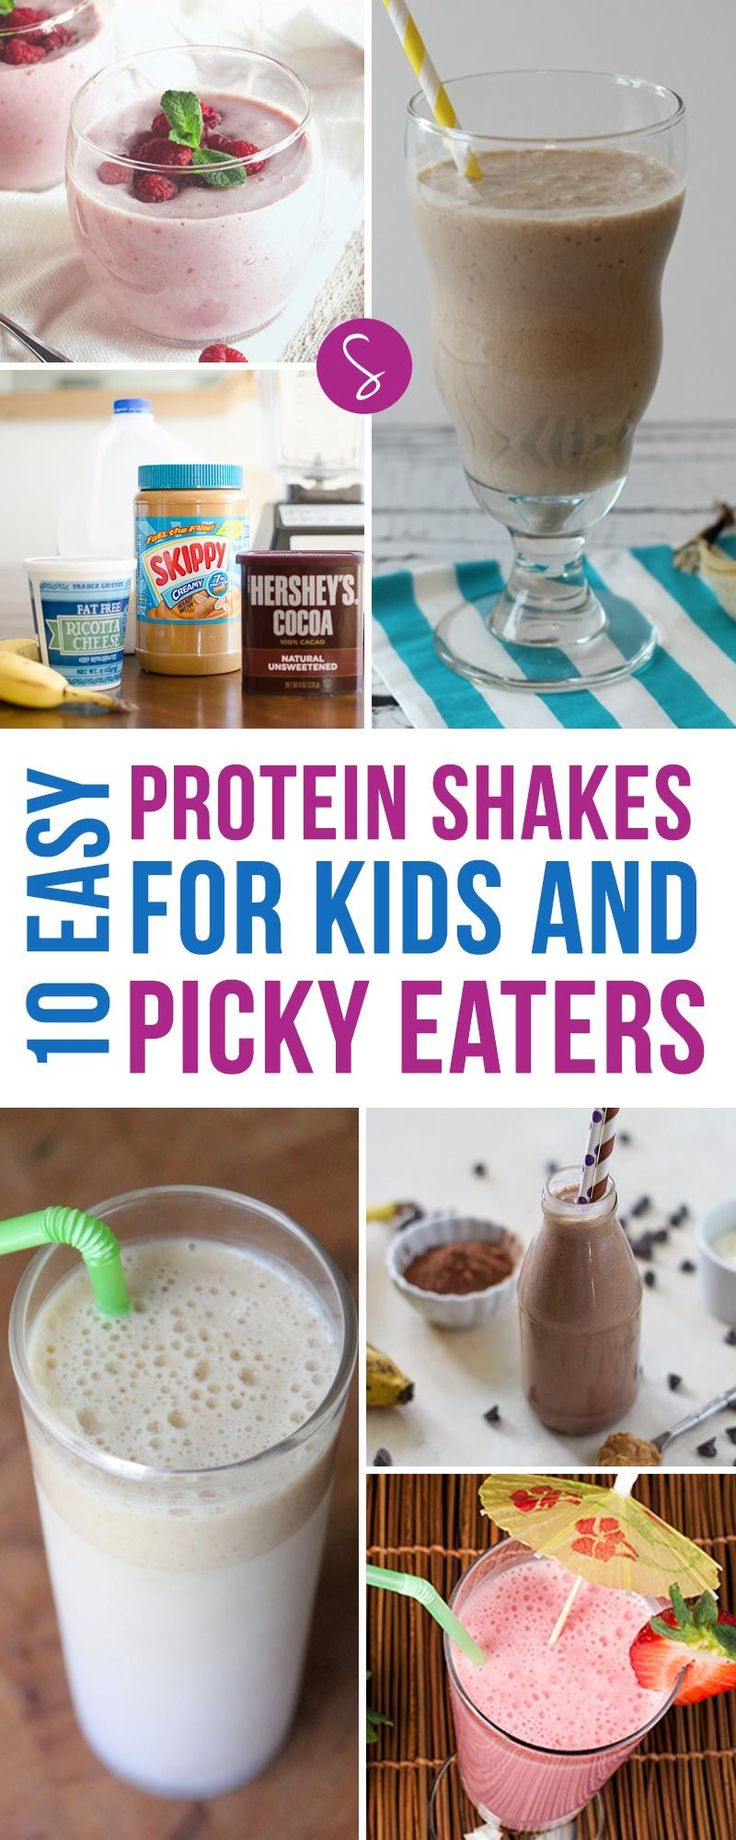 These Easy Protein Shakes for Kids are perfect for children who need a little helping hand to get that all important protein into their bodies! (smoothie recipes for kids)